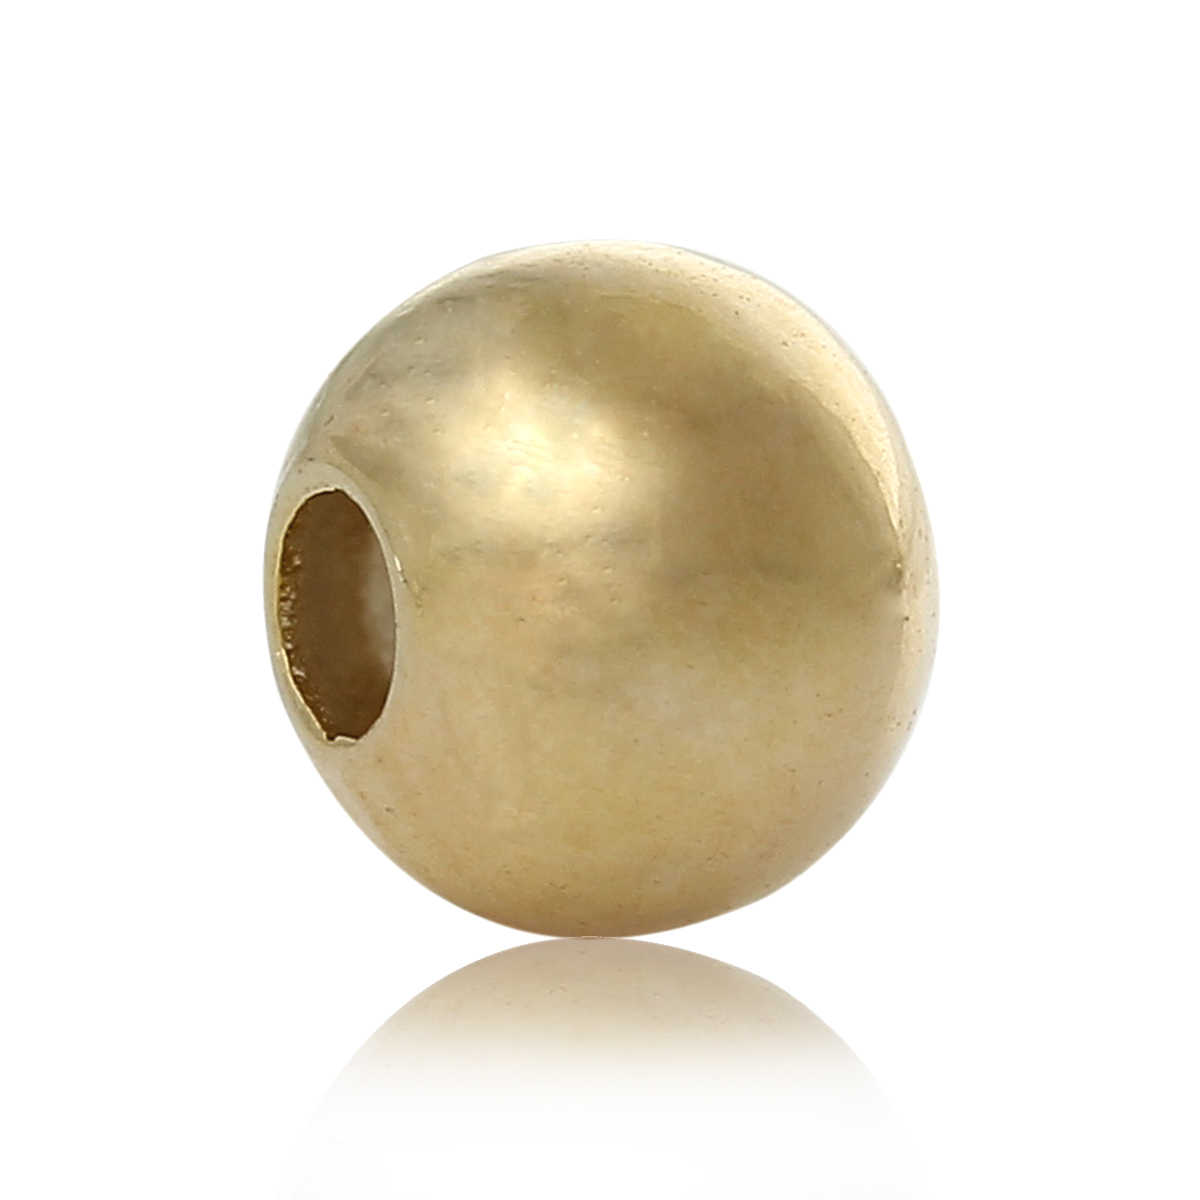 "Copper Spacer Beads Round Gold Color About 3mm( 1/8"") Dia, Hole:Approx 1mm, 15 PCs new"